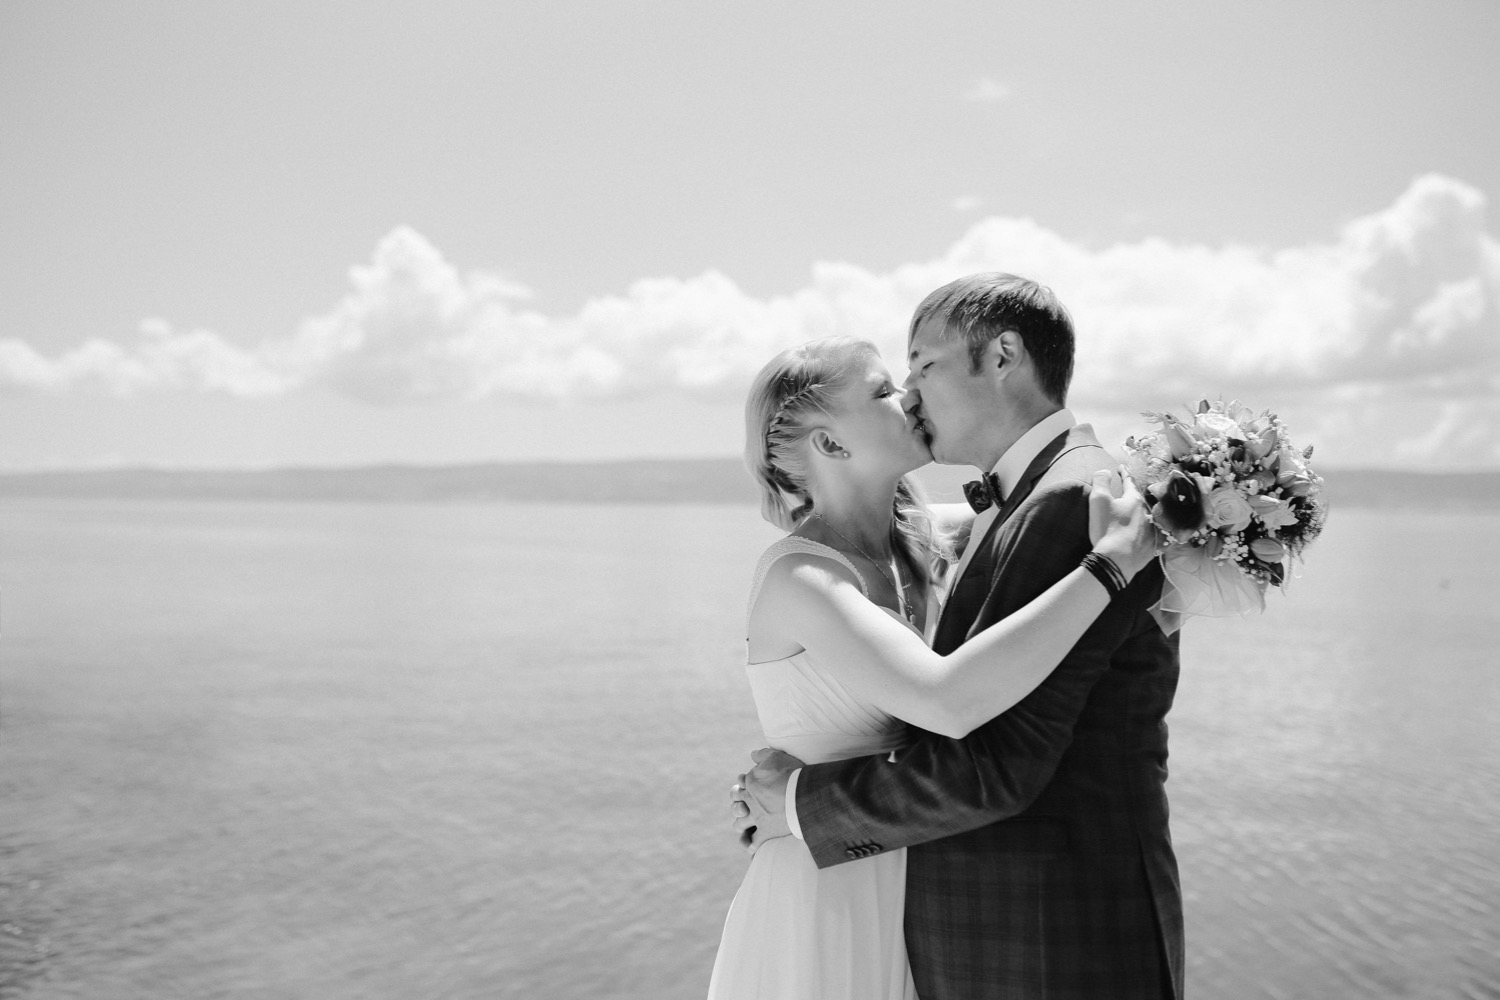 Croatia beach elopement hilke thomas love and ventures photography 38 | Croatia Elopement Photographer and Videographer